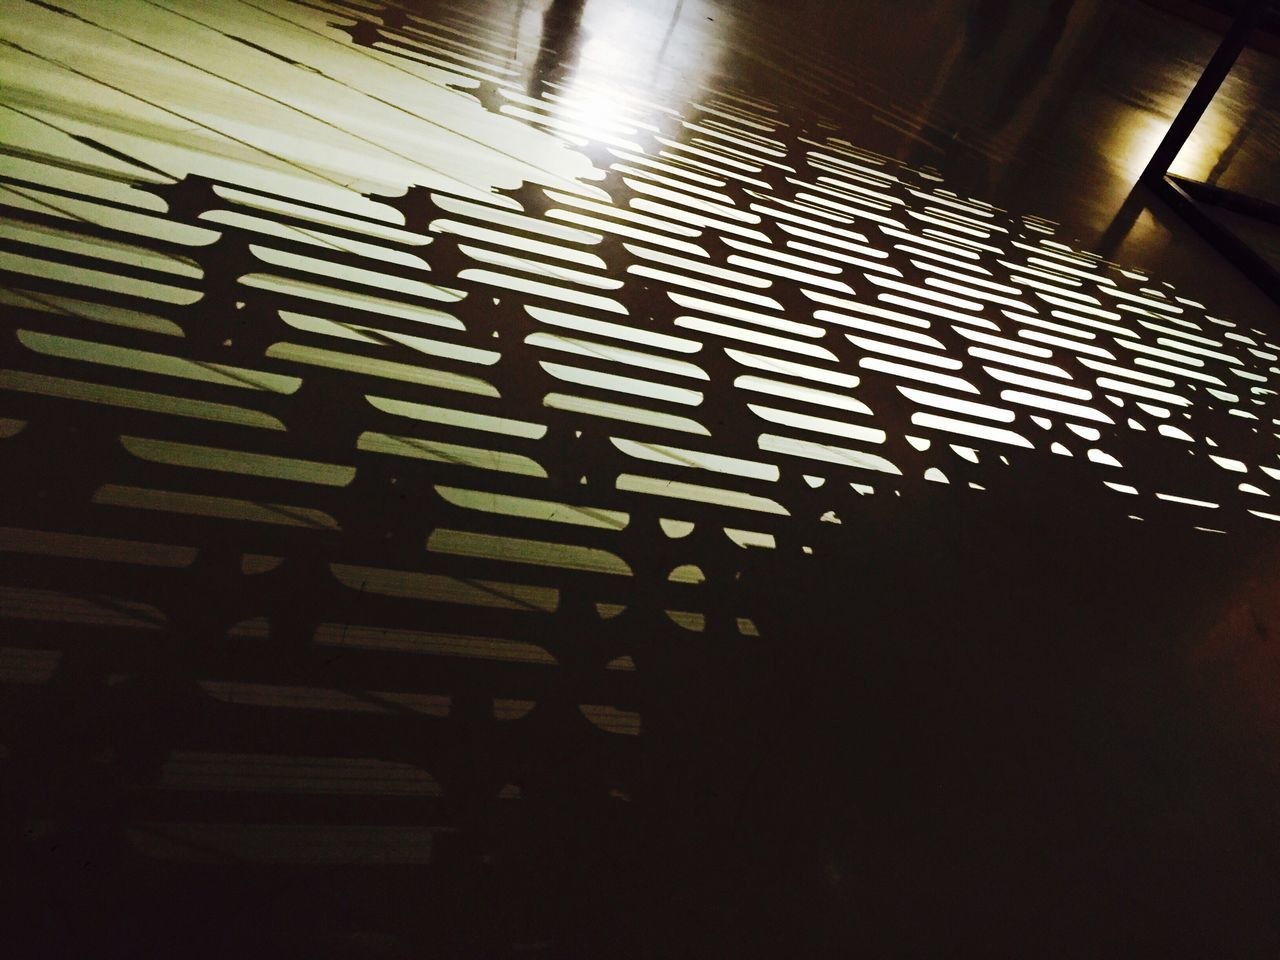 indoors, pattern, no people, shadow, close-up, day, illuminated